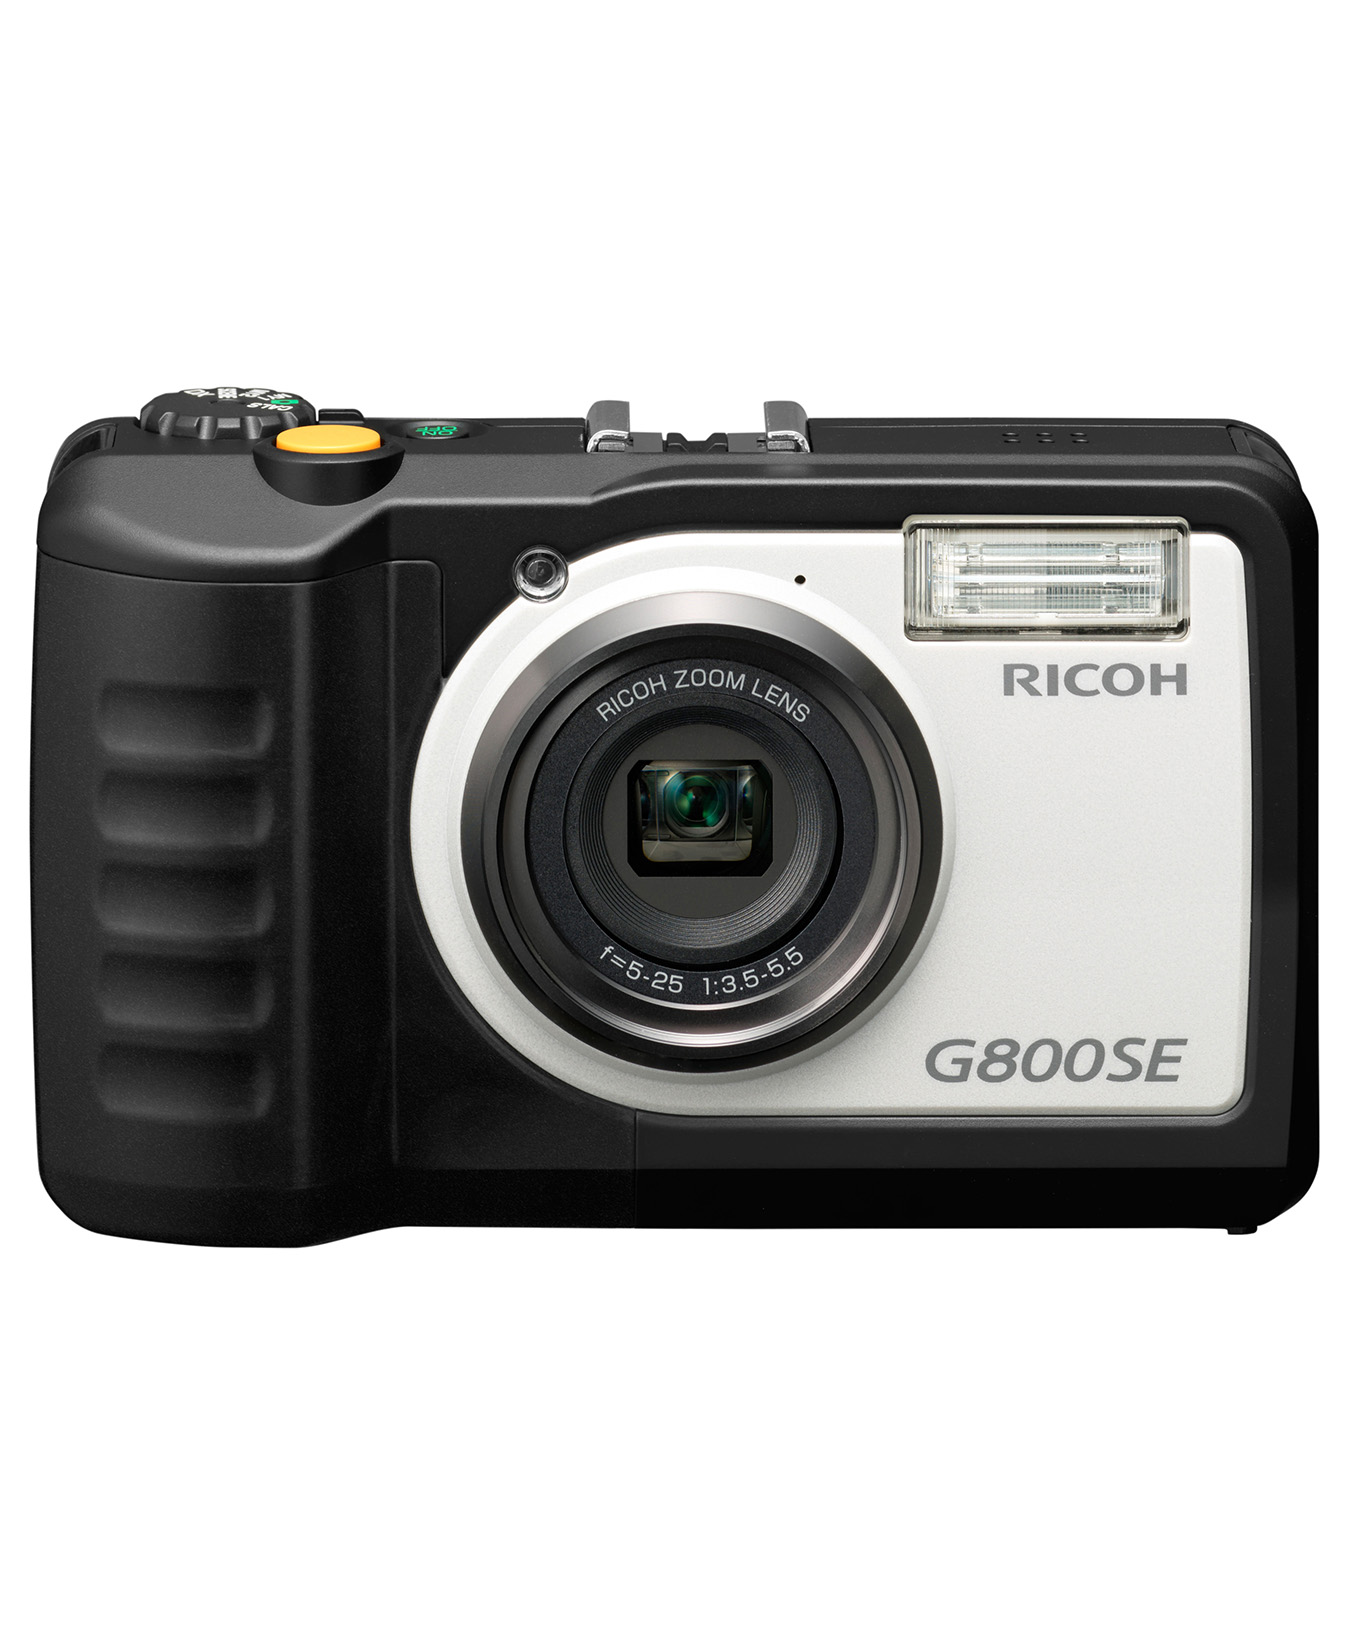 Ricoh Digital Cameras Eg Electronics Camera Lens And Circuit Board Photography Concept Contacts